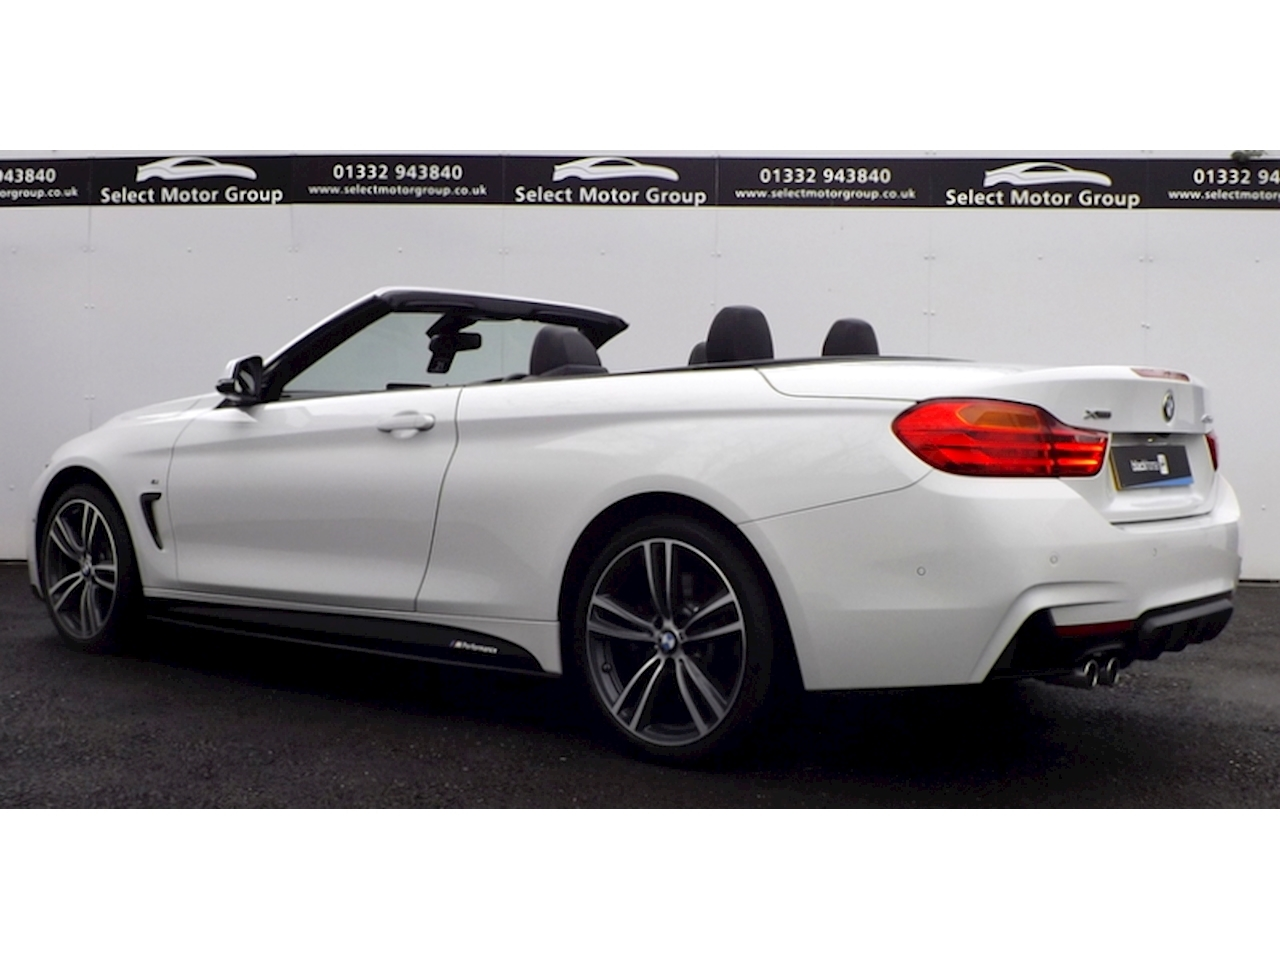 4 Series 435D 3.0 Xdrive M Sport Convertible Automatic Diesel